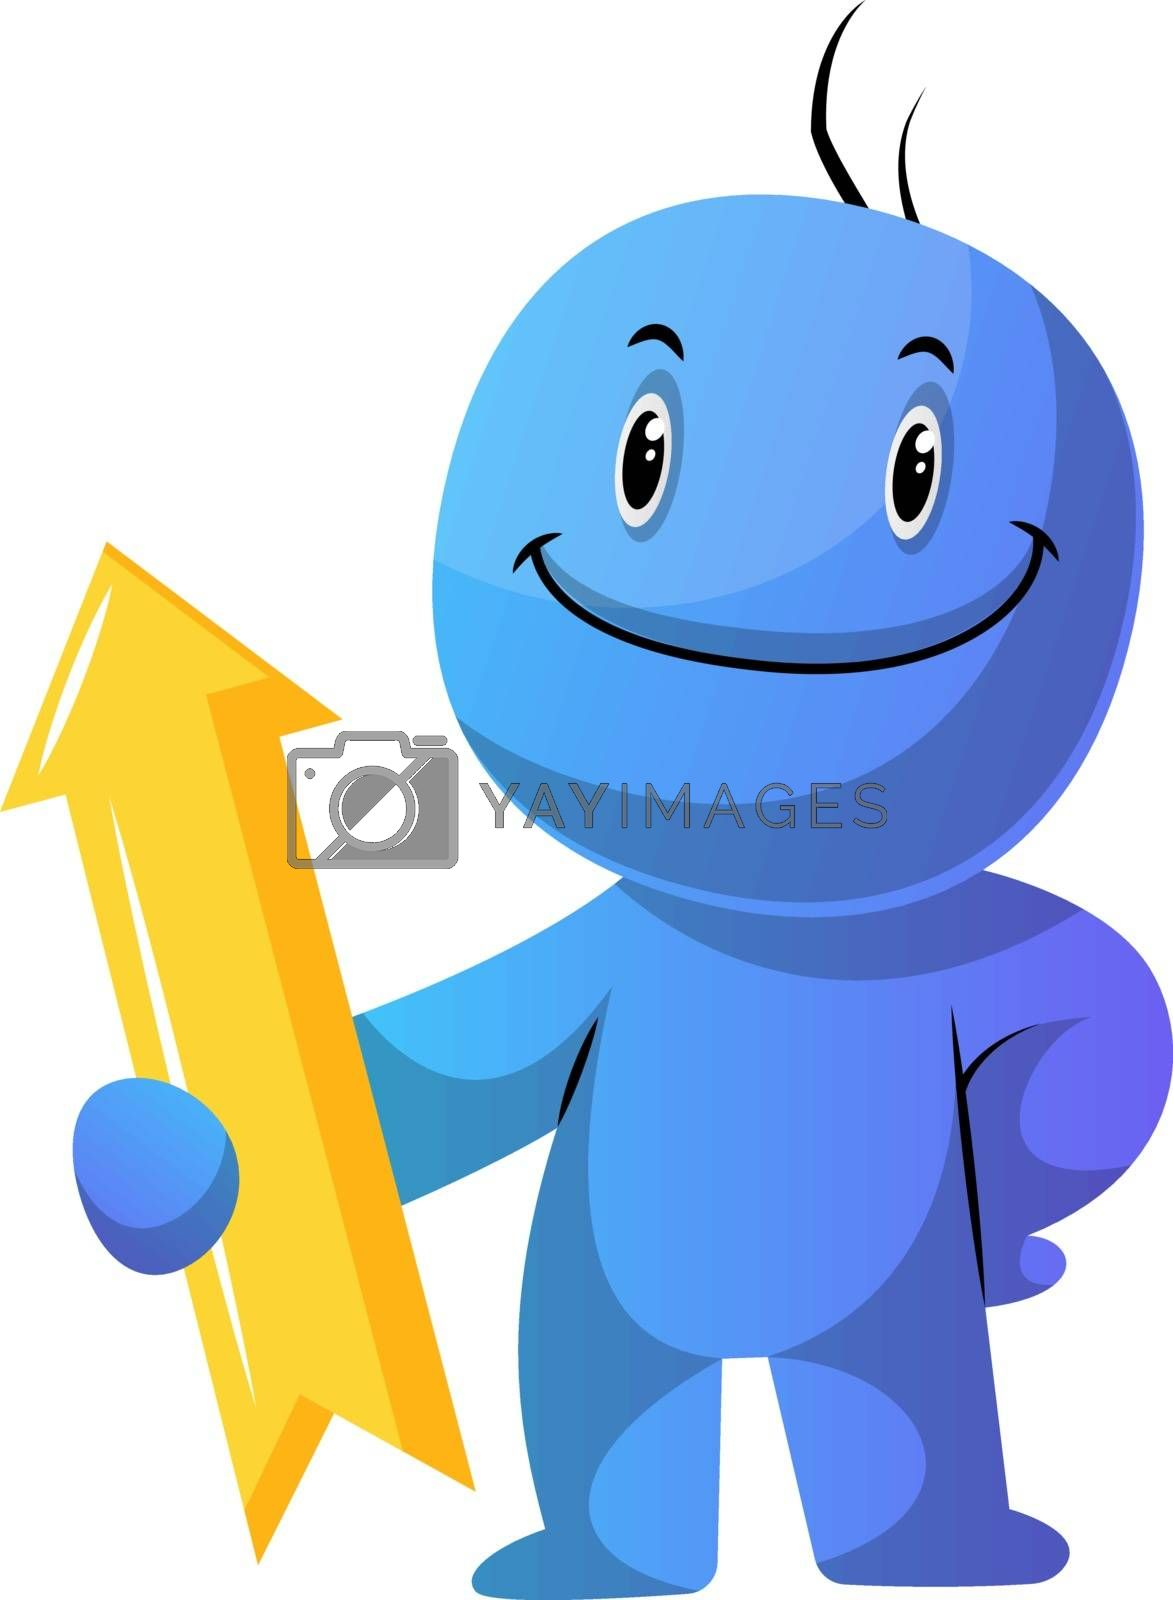 Royalty free image of Blue cartoon caracter with yellow direction sign illustration ve by Morphart